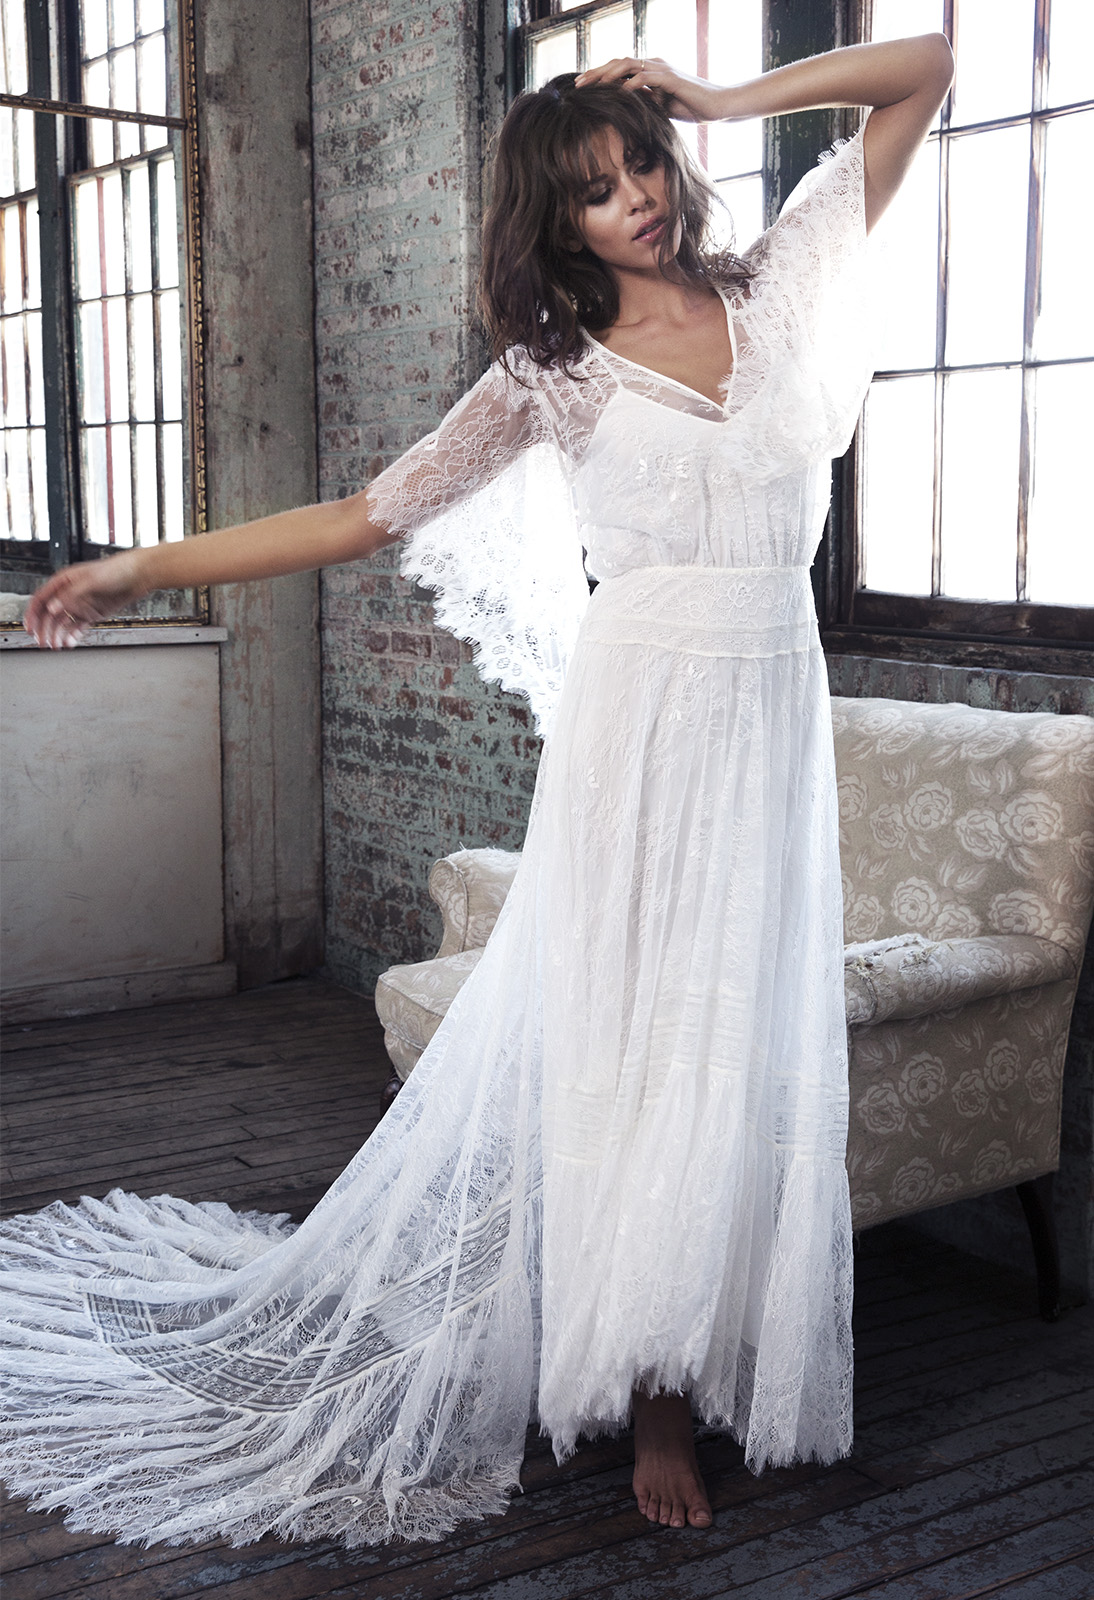 Sofia. Beginning with a flattering, V neckline, the Sofia features embroidered French lace shoulders and cap sleeve panels which flow into a graduated, waterfall sleeve